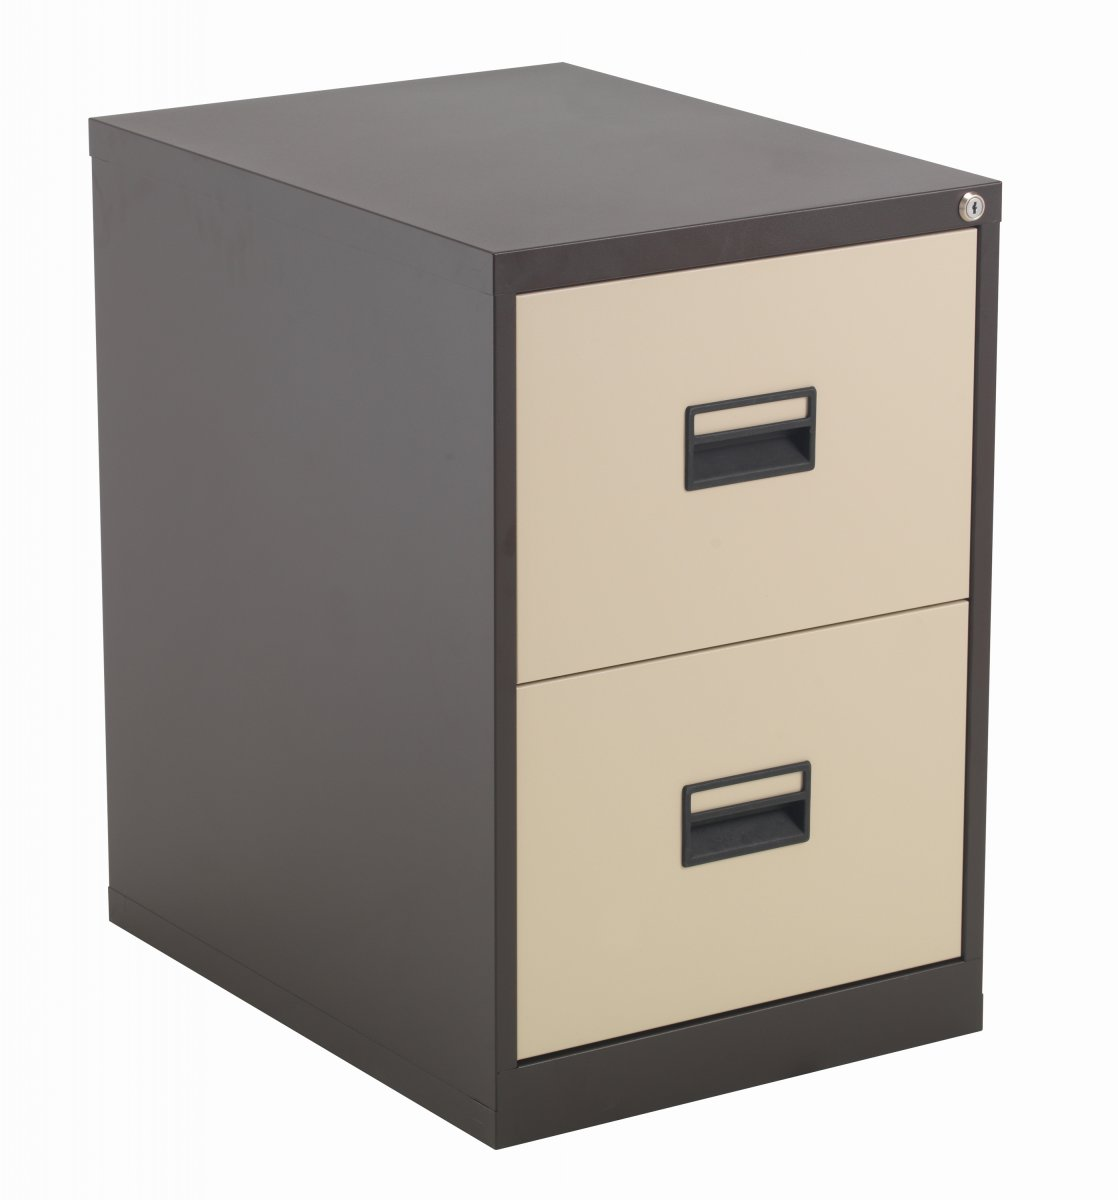 Talos Steel Storage 2 Drawer Filing Cabinet - Coffee Cream